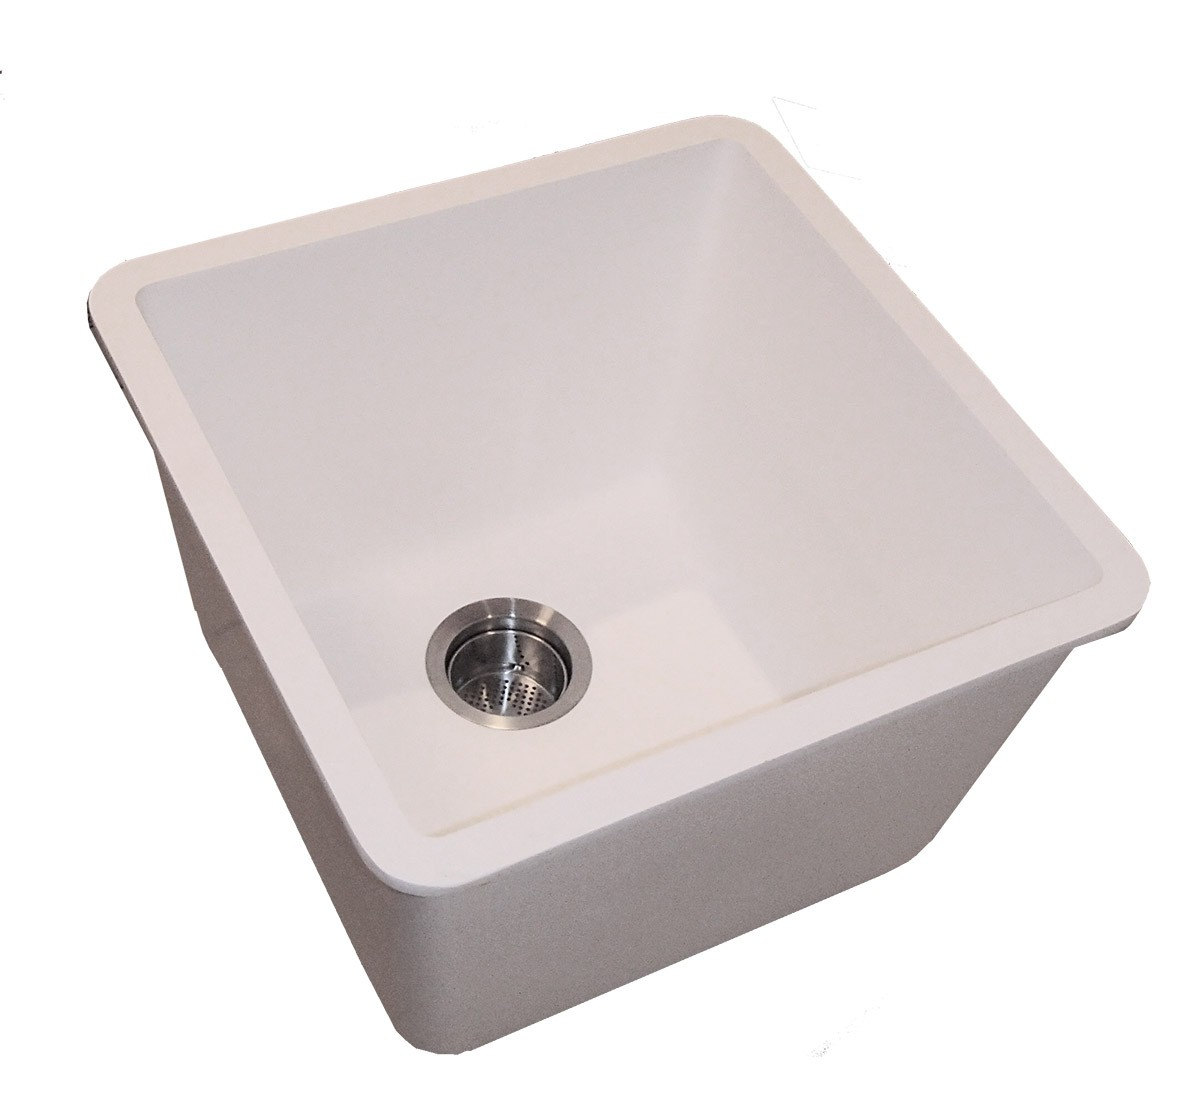 Deep Utility Kitchen Sink (Winter White), Gemstone Part#: 1616-ES-WW